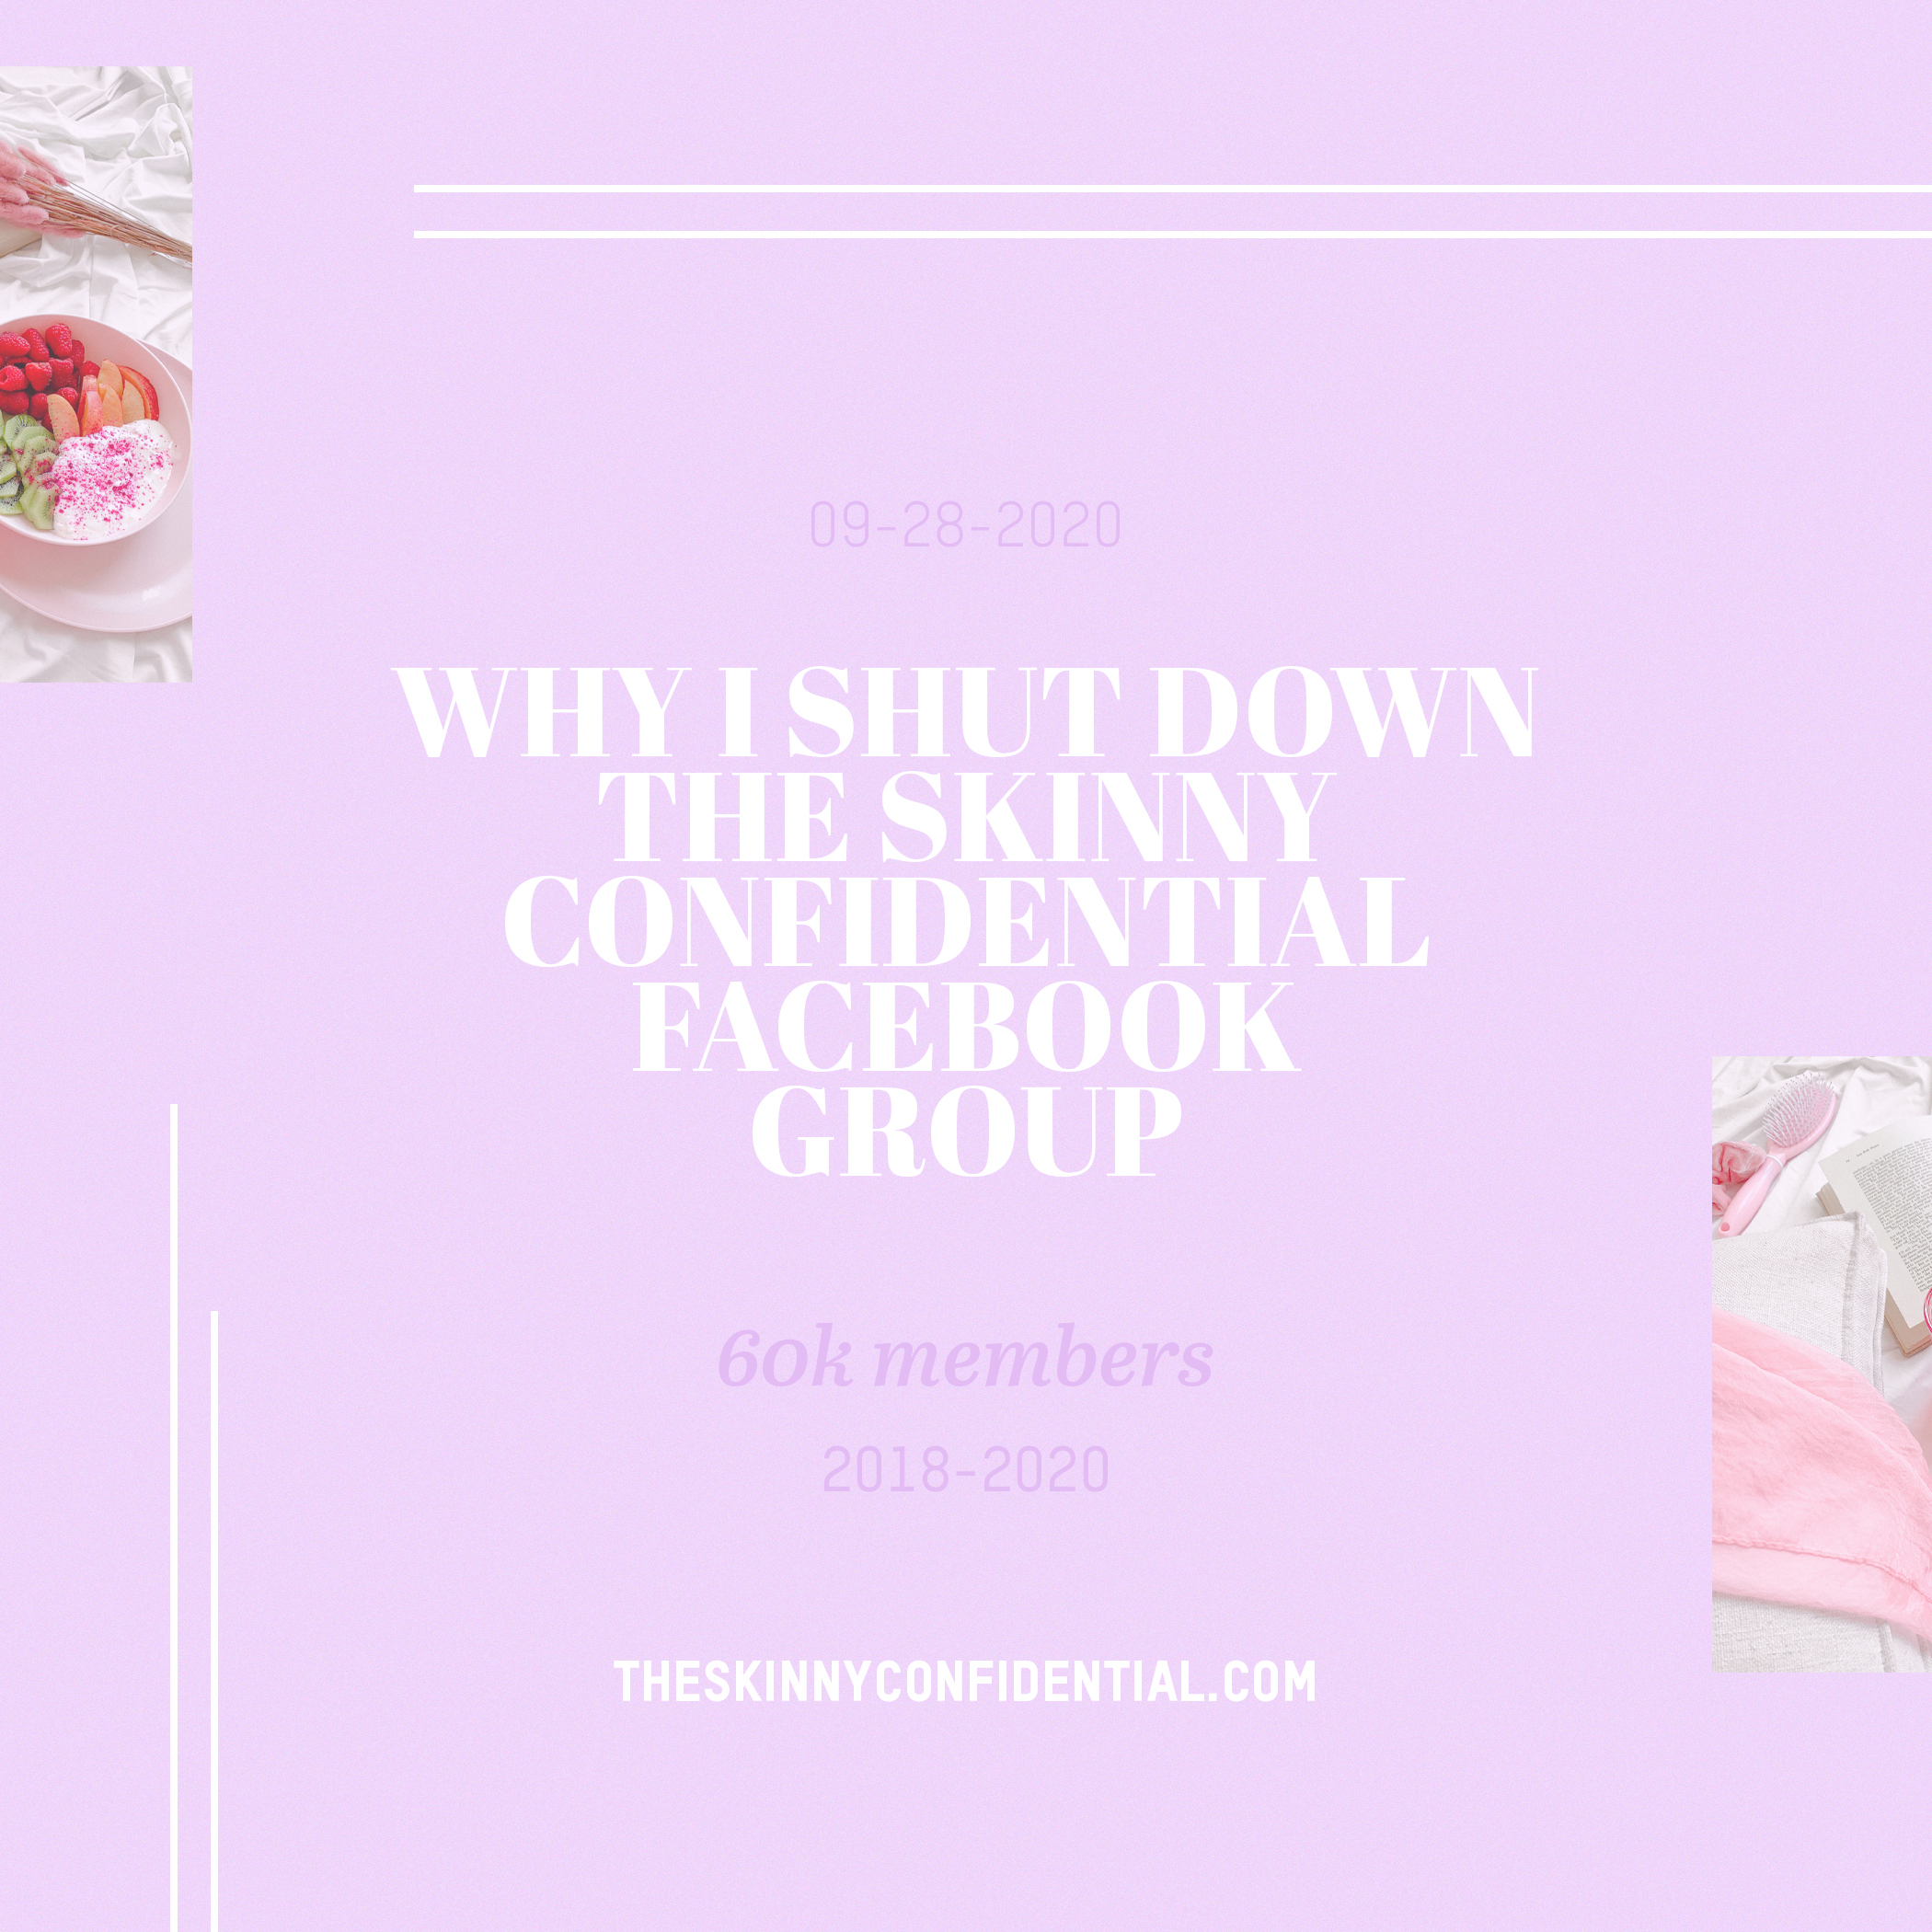 Why I Shut Down My Facebook Group With Over 60k Members